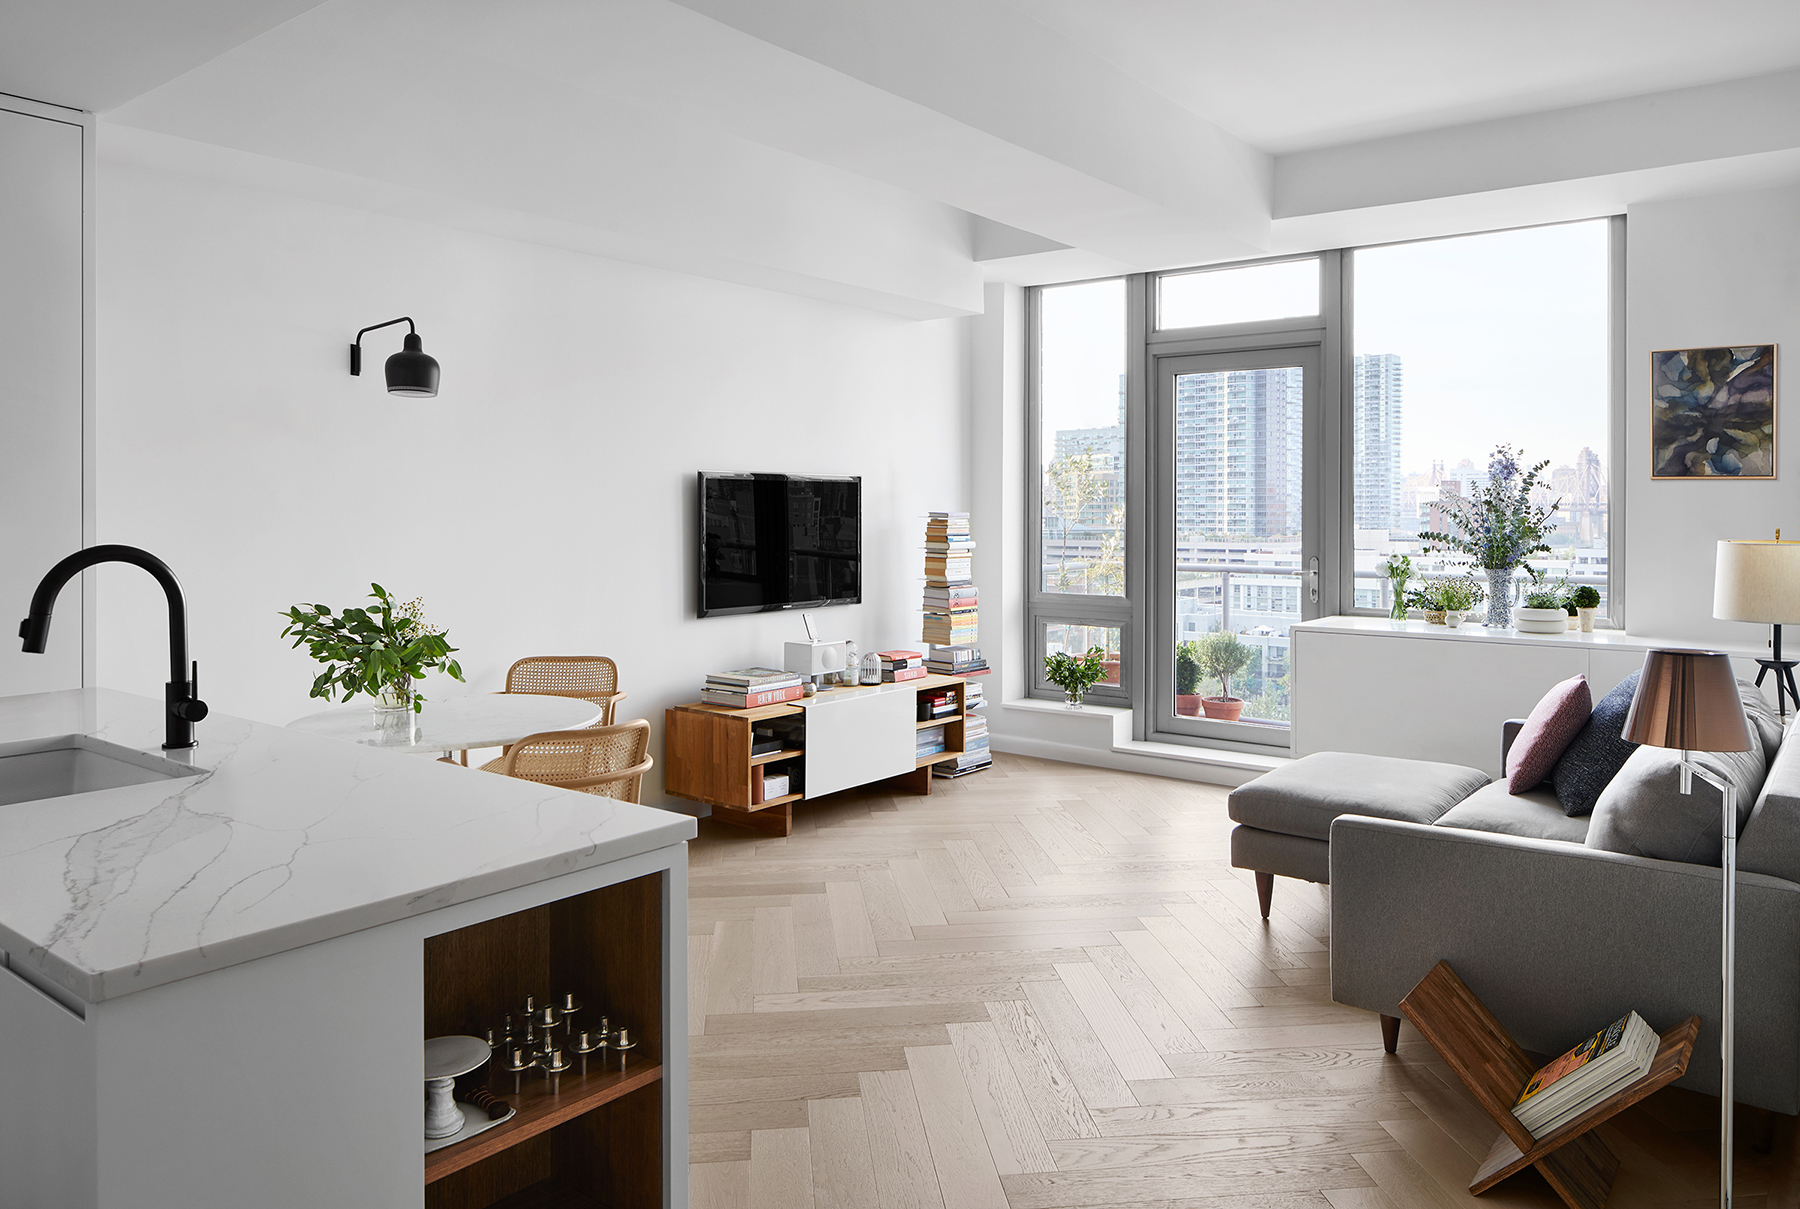 Long Island City Apartment, STADT Architecture